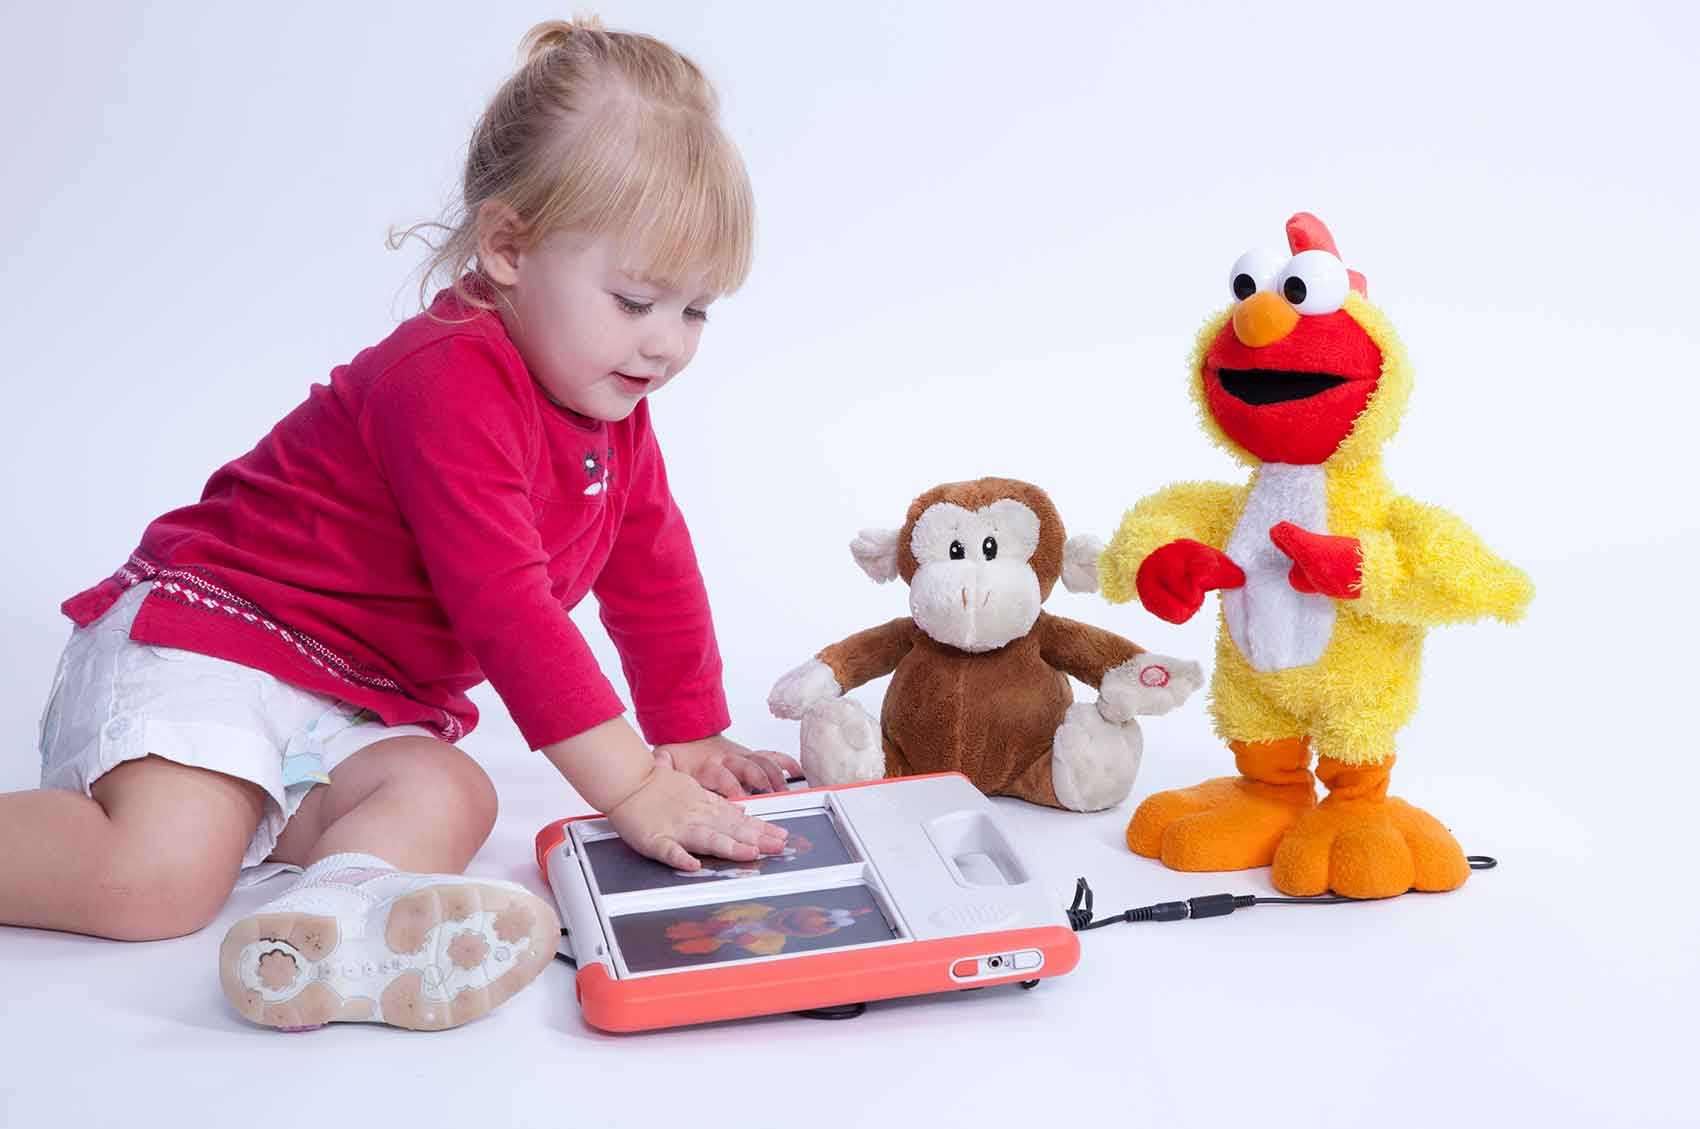 Technology for Child's Play